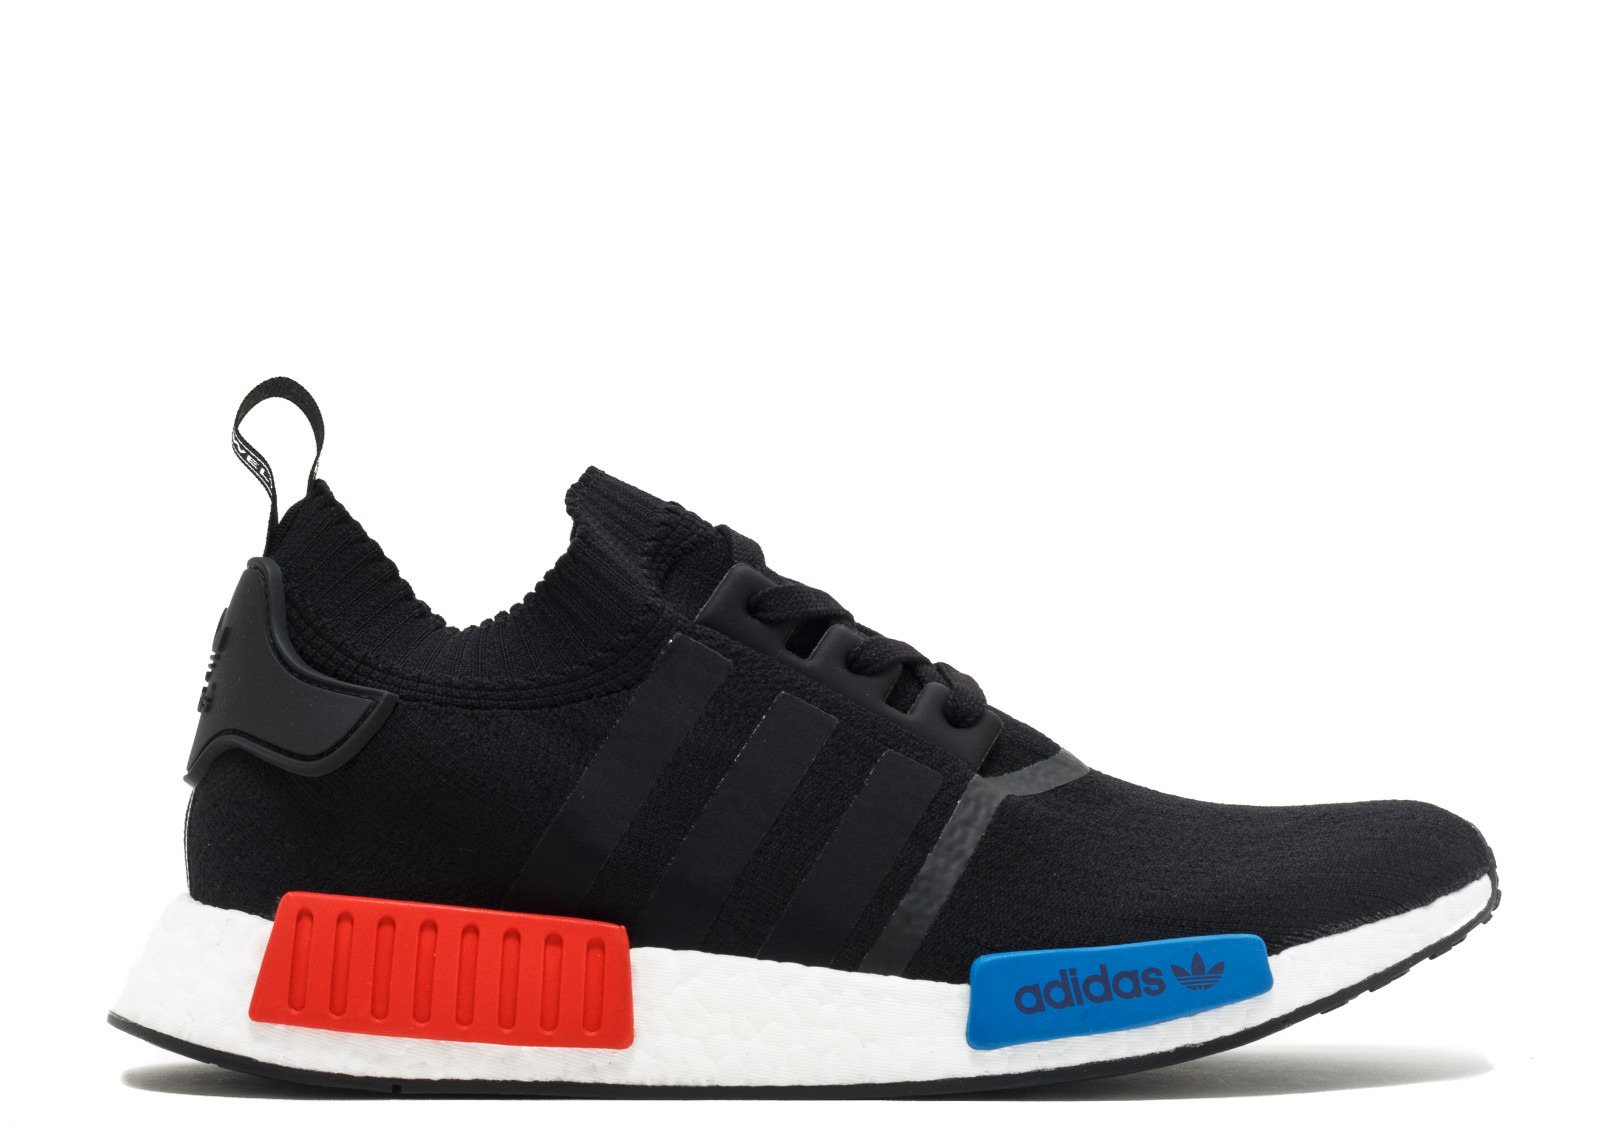 Details about Nmd R1 Pk 'Nmd Og 2017' - S79168a - Size 9.5